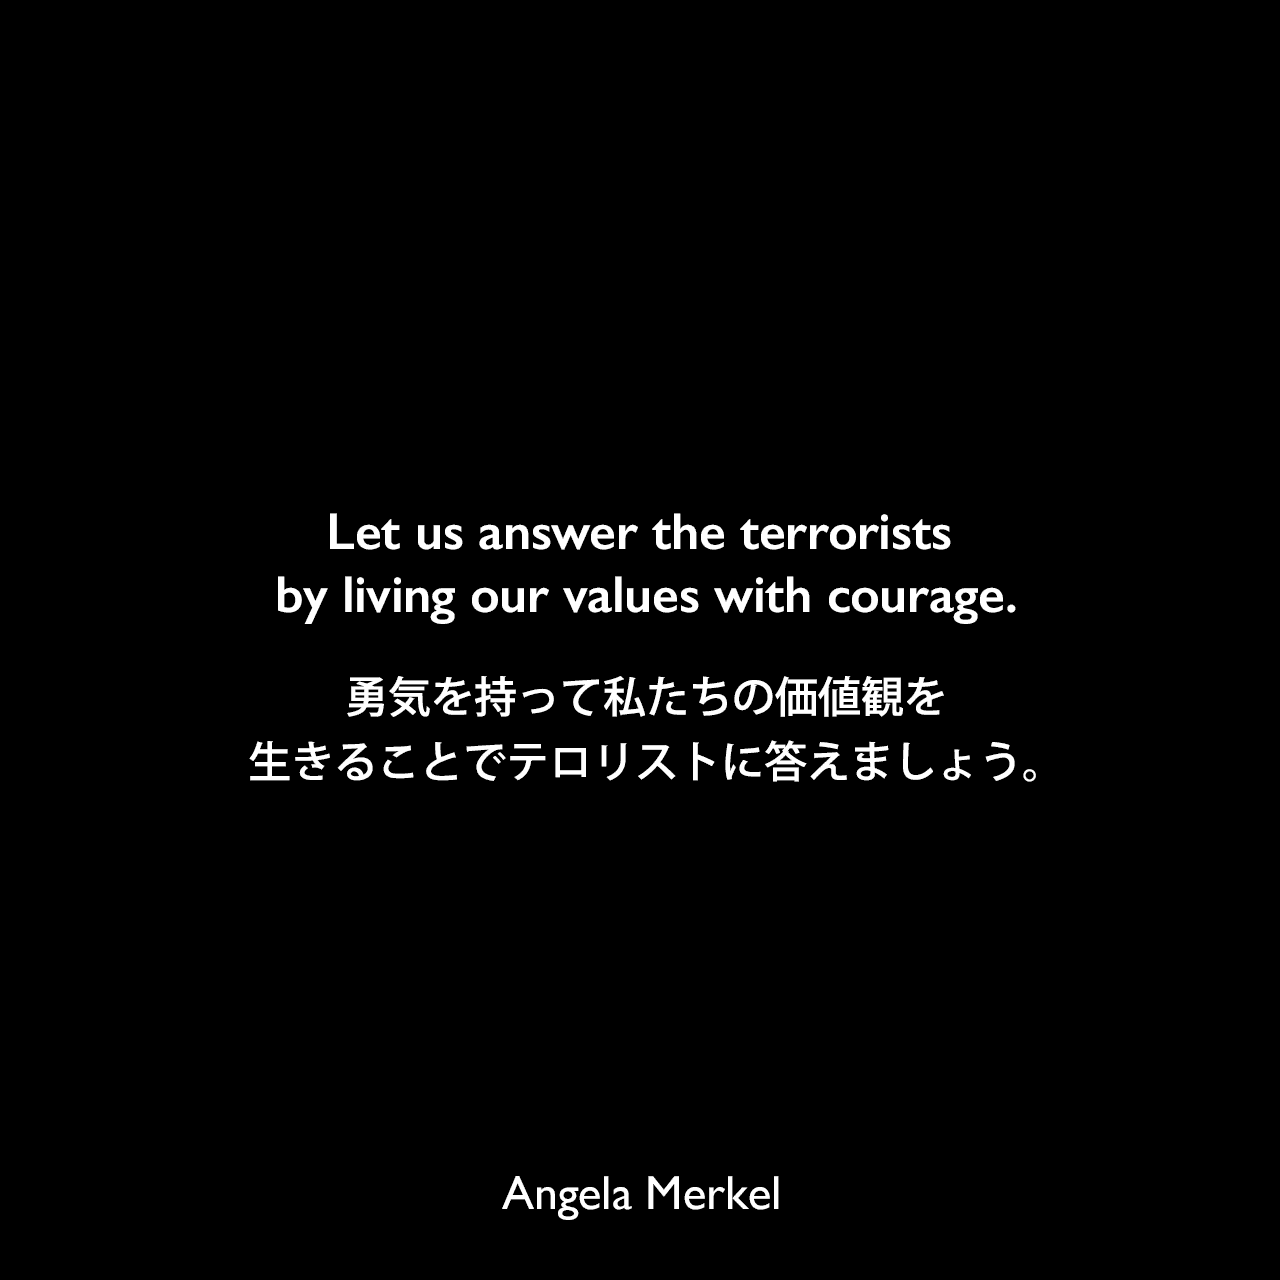 Let us answer the terrorists by living our values with courage.勇気を持って私たちの価値観を生きることでテロリストに答えましょう。Angela Merkel